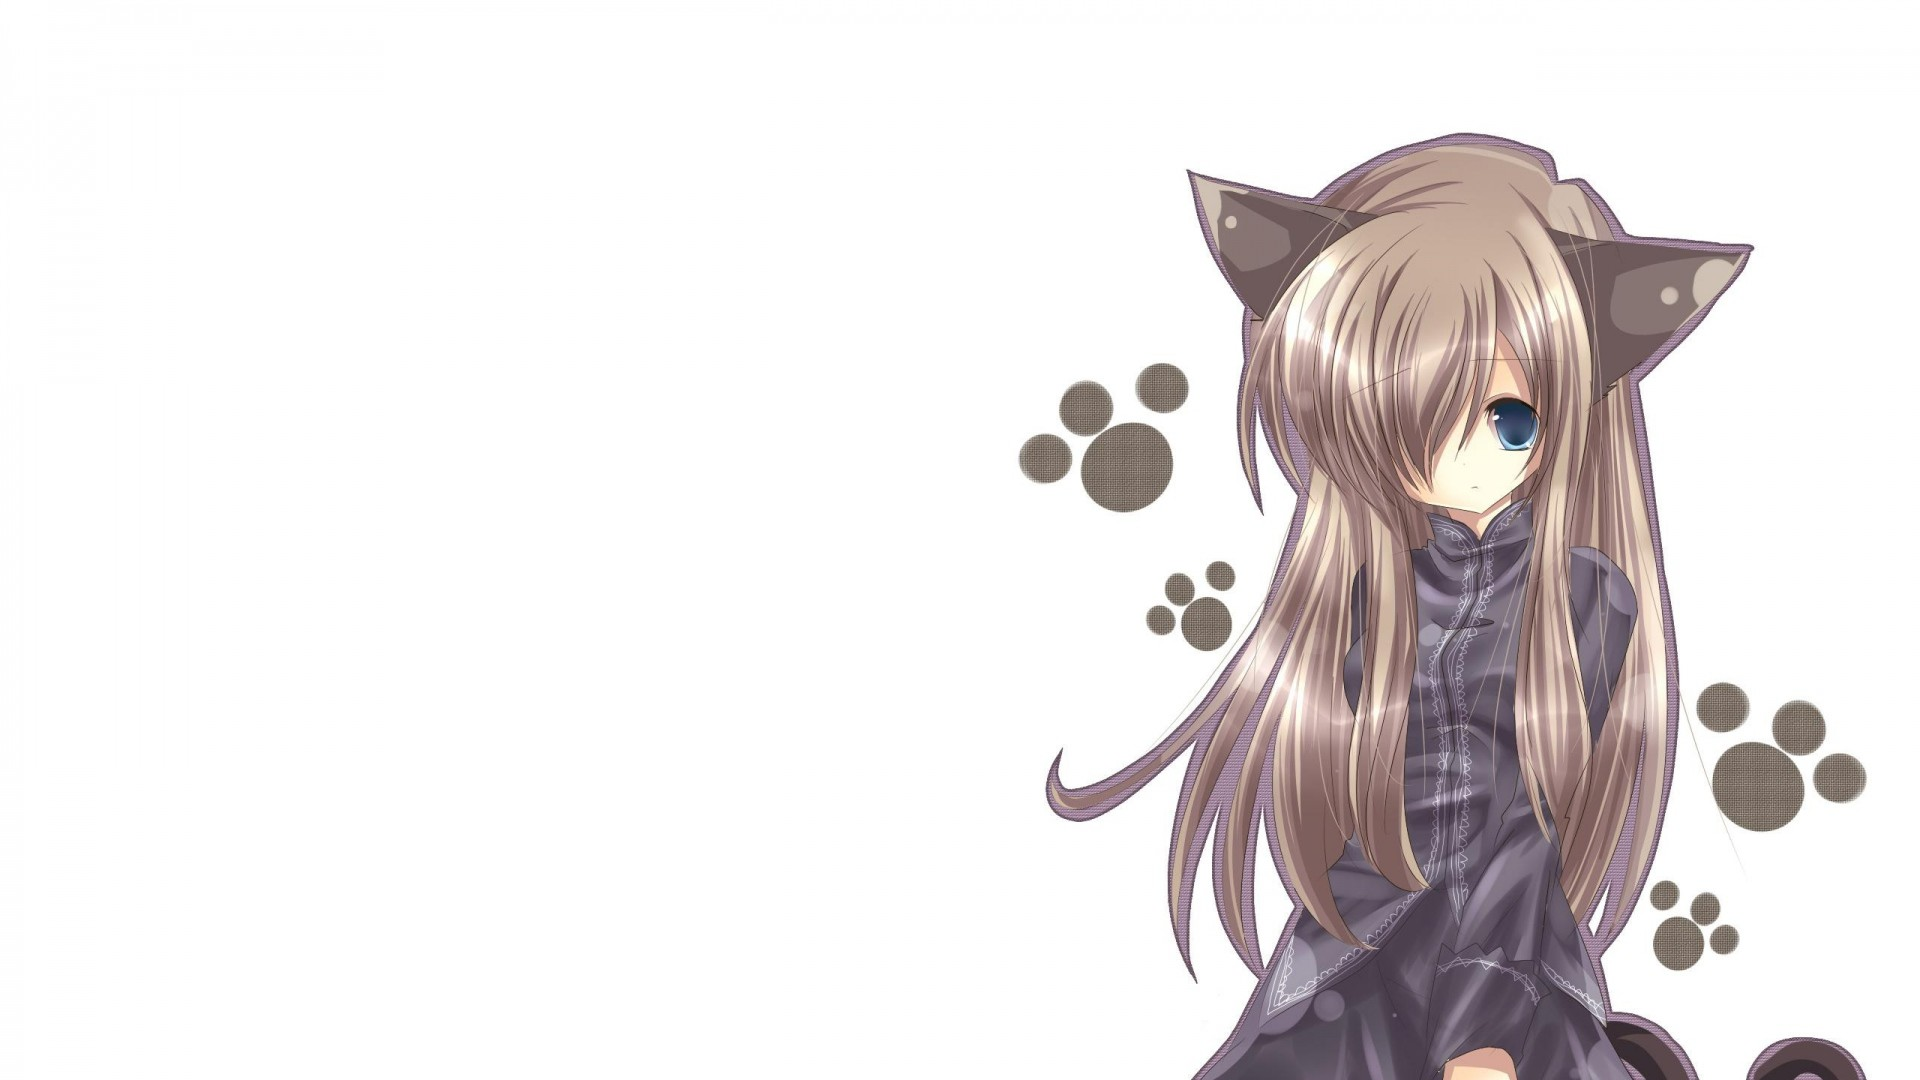 Anime Girl With Cat Ears Wallpaper Anime Girl Hd Wallpaper 1080p 83 Images